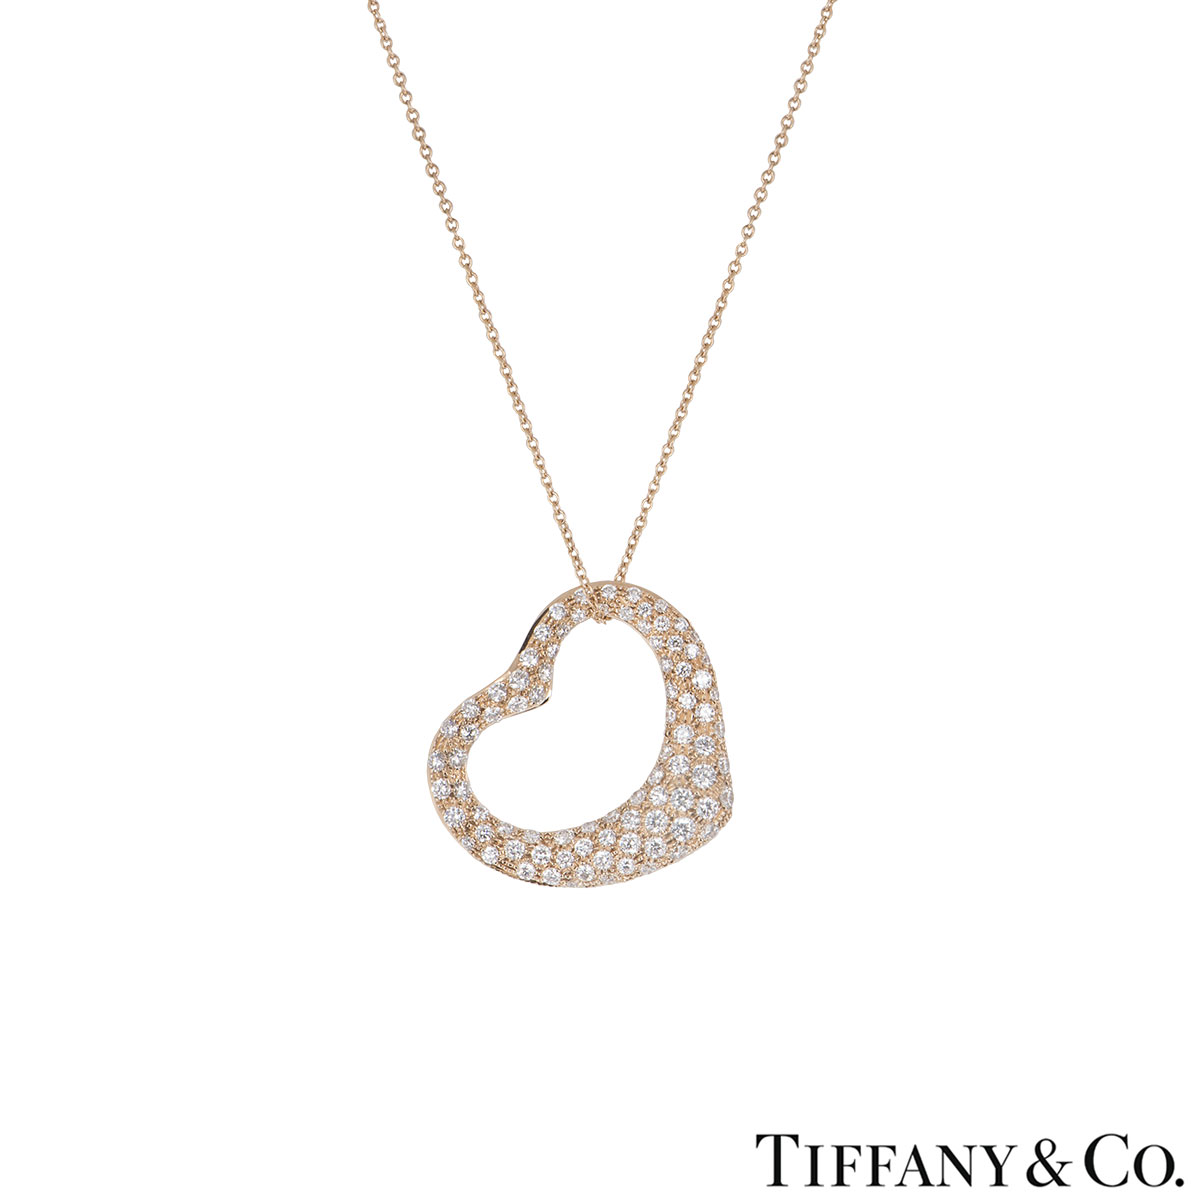 Tiffany & Co. Rose Gold Diamond Elsa Peretti Heart Necklace